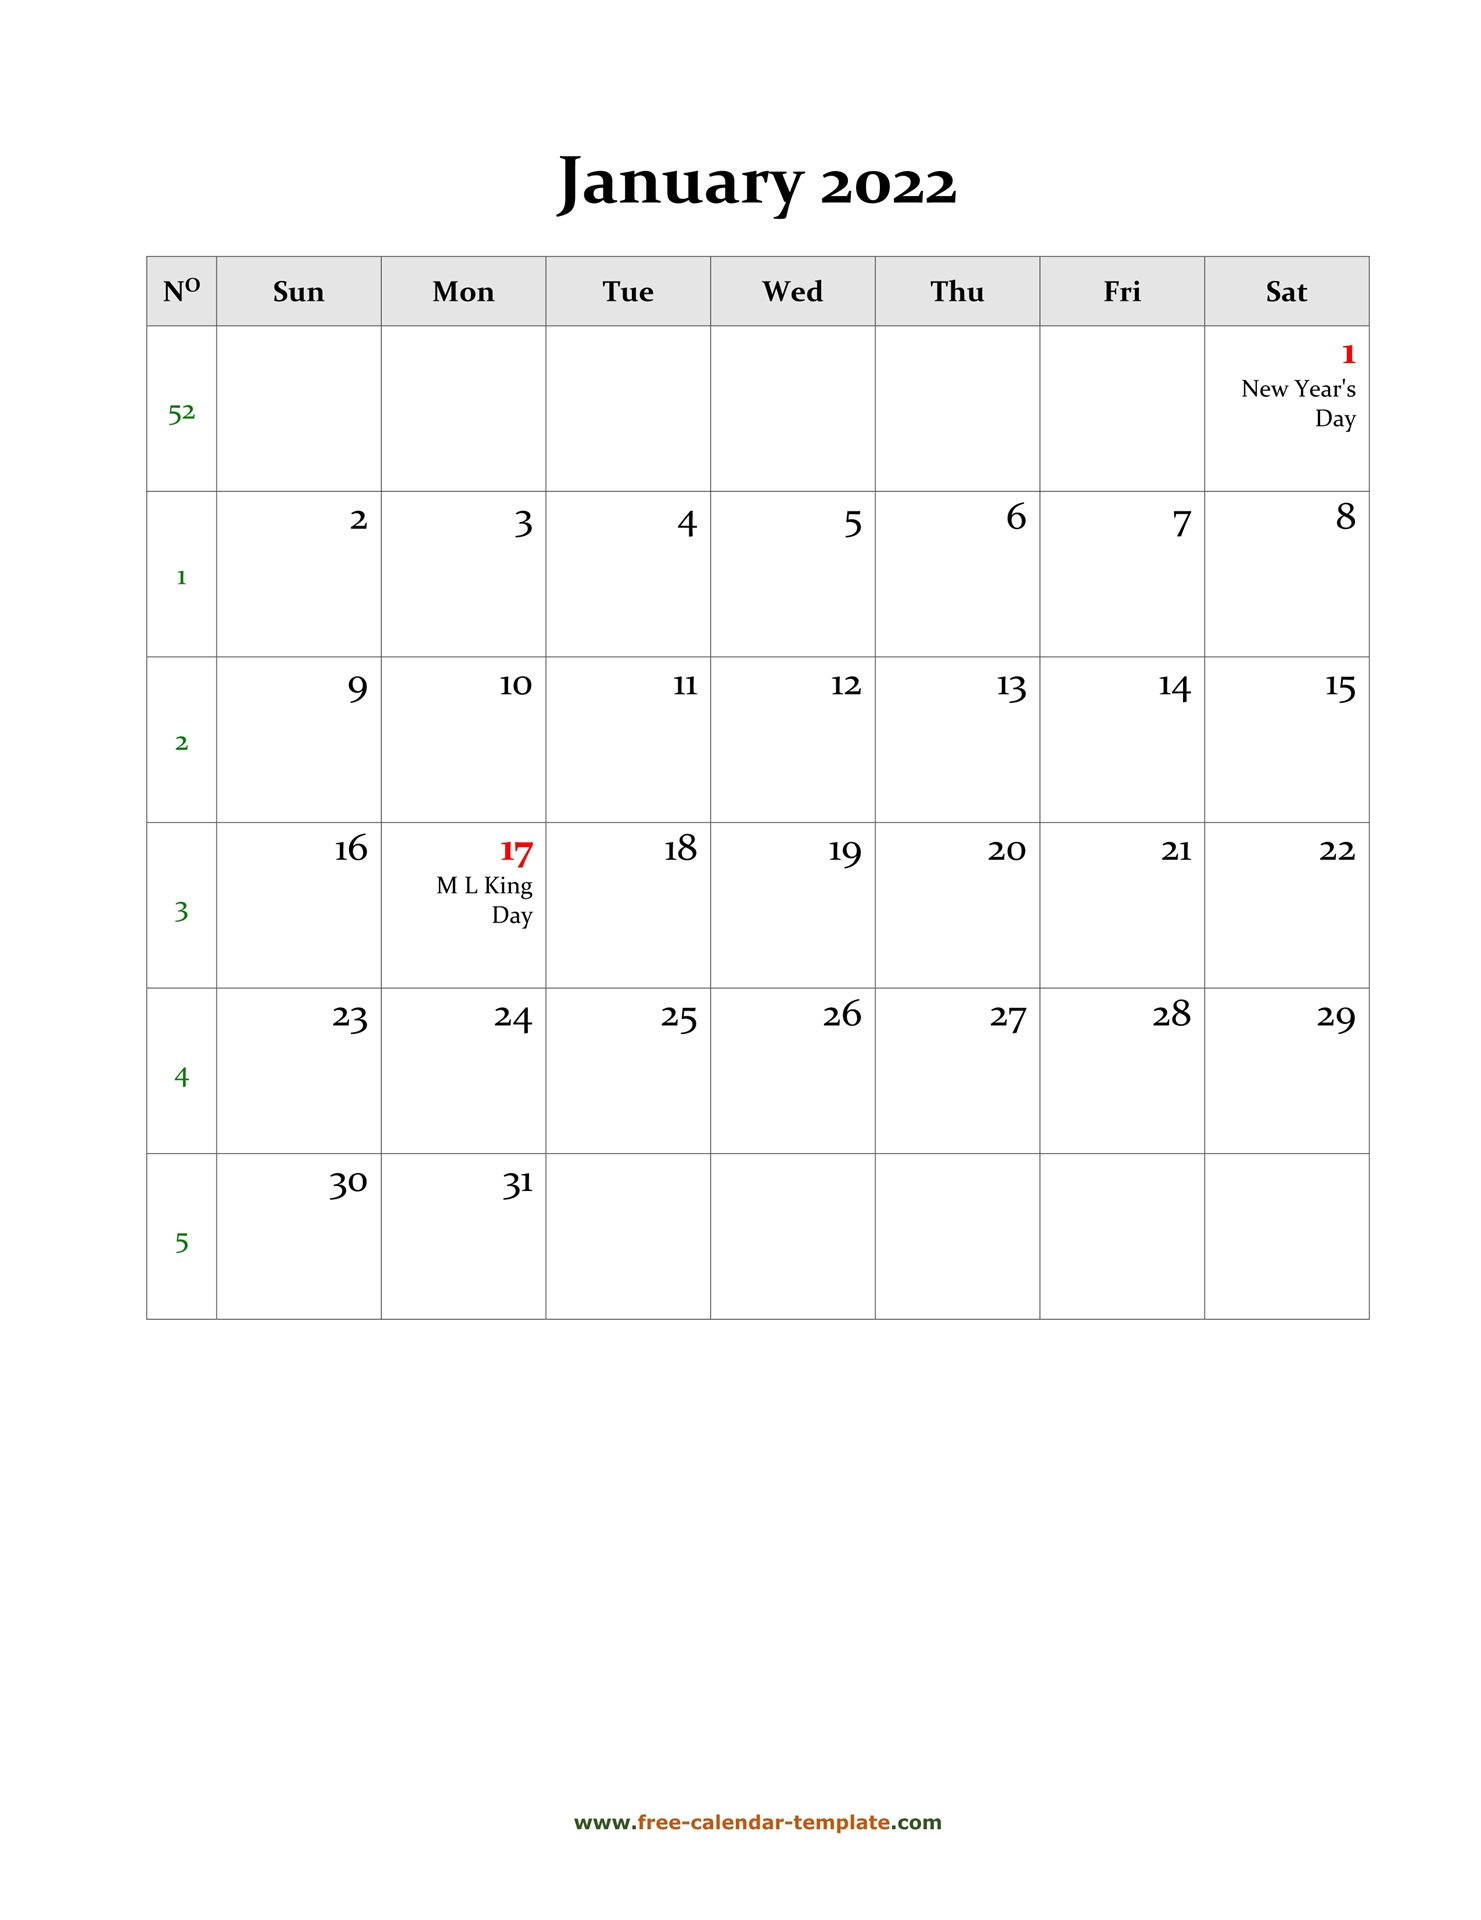 2022 January Calendar (Blank Vertical Template) | Free with Monthly Calendar 2022 January